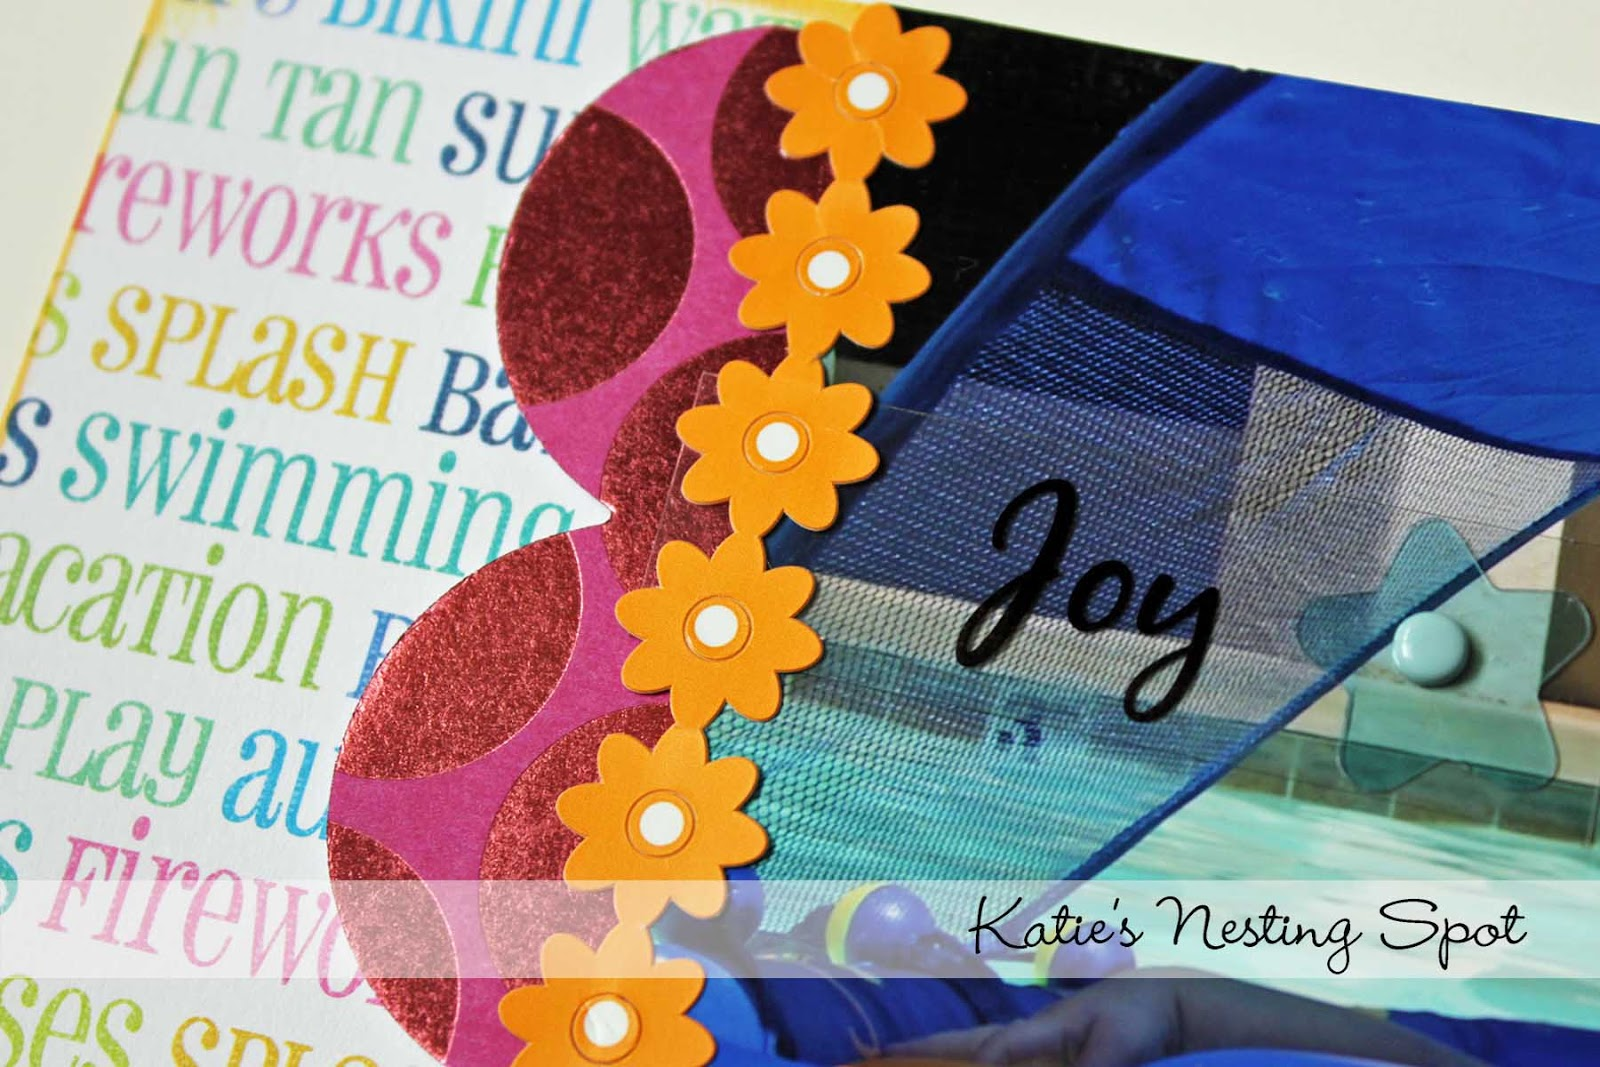 How to scrapbook without page protectors - I M Still Catching Up On Scrapbooking Pages From My Daughter S Early Years And Trying To Fill In Some Blanks In Her Albums I Think Part Of The Reason For